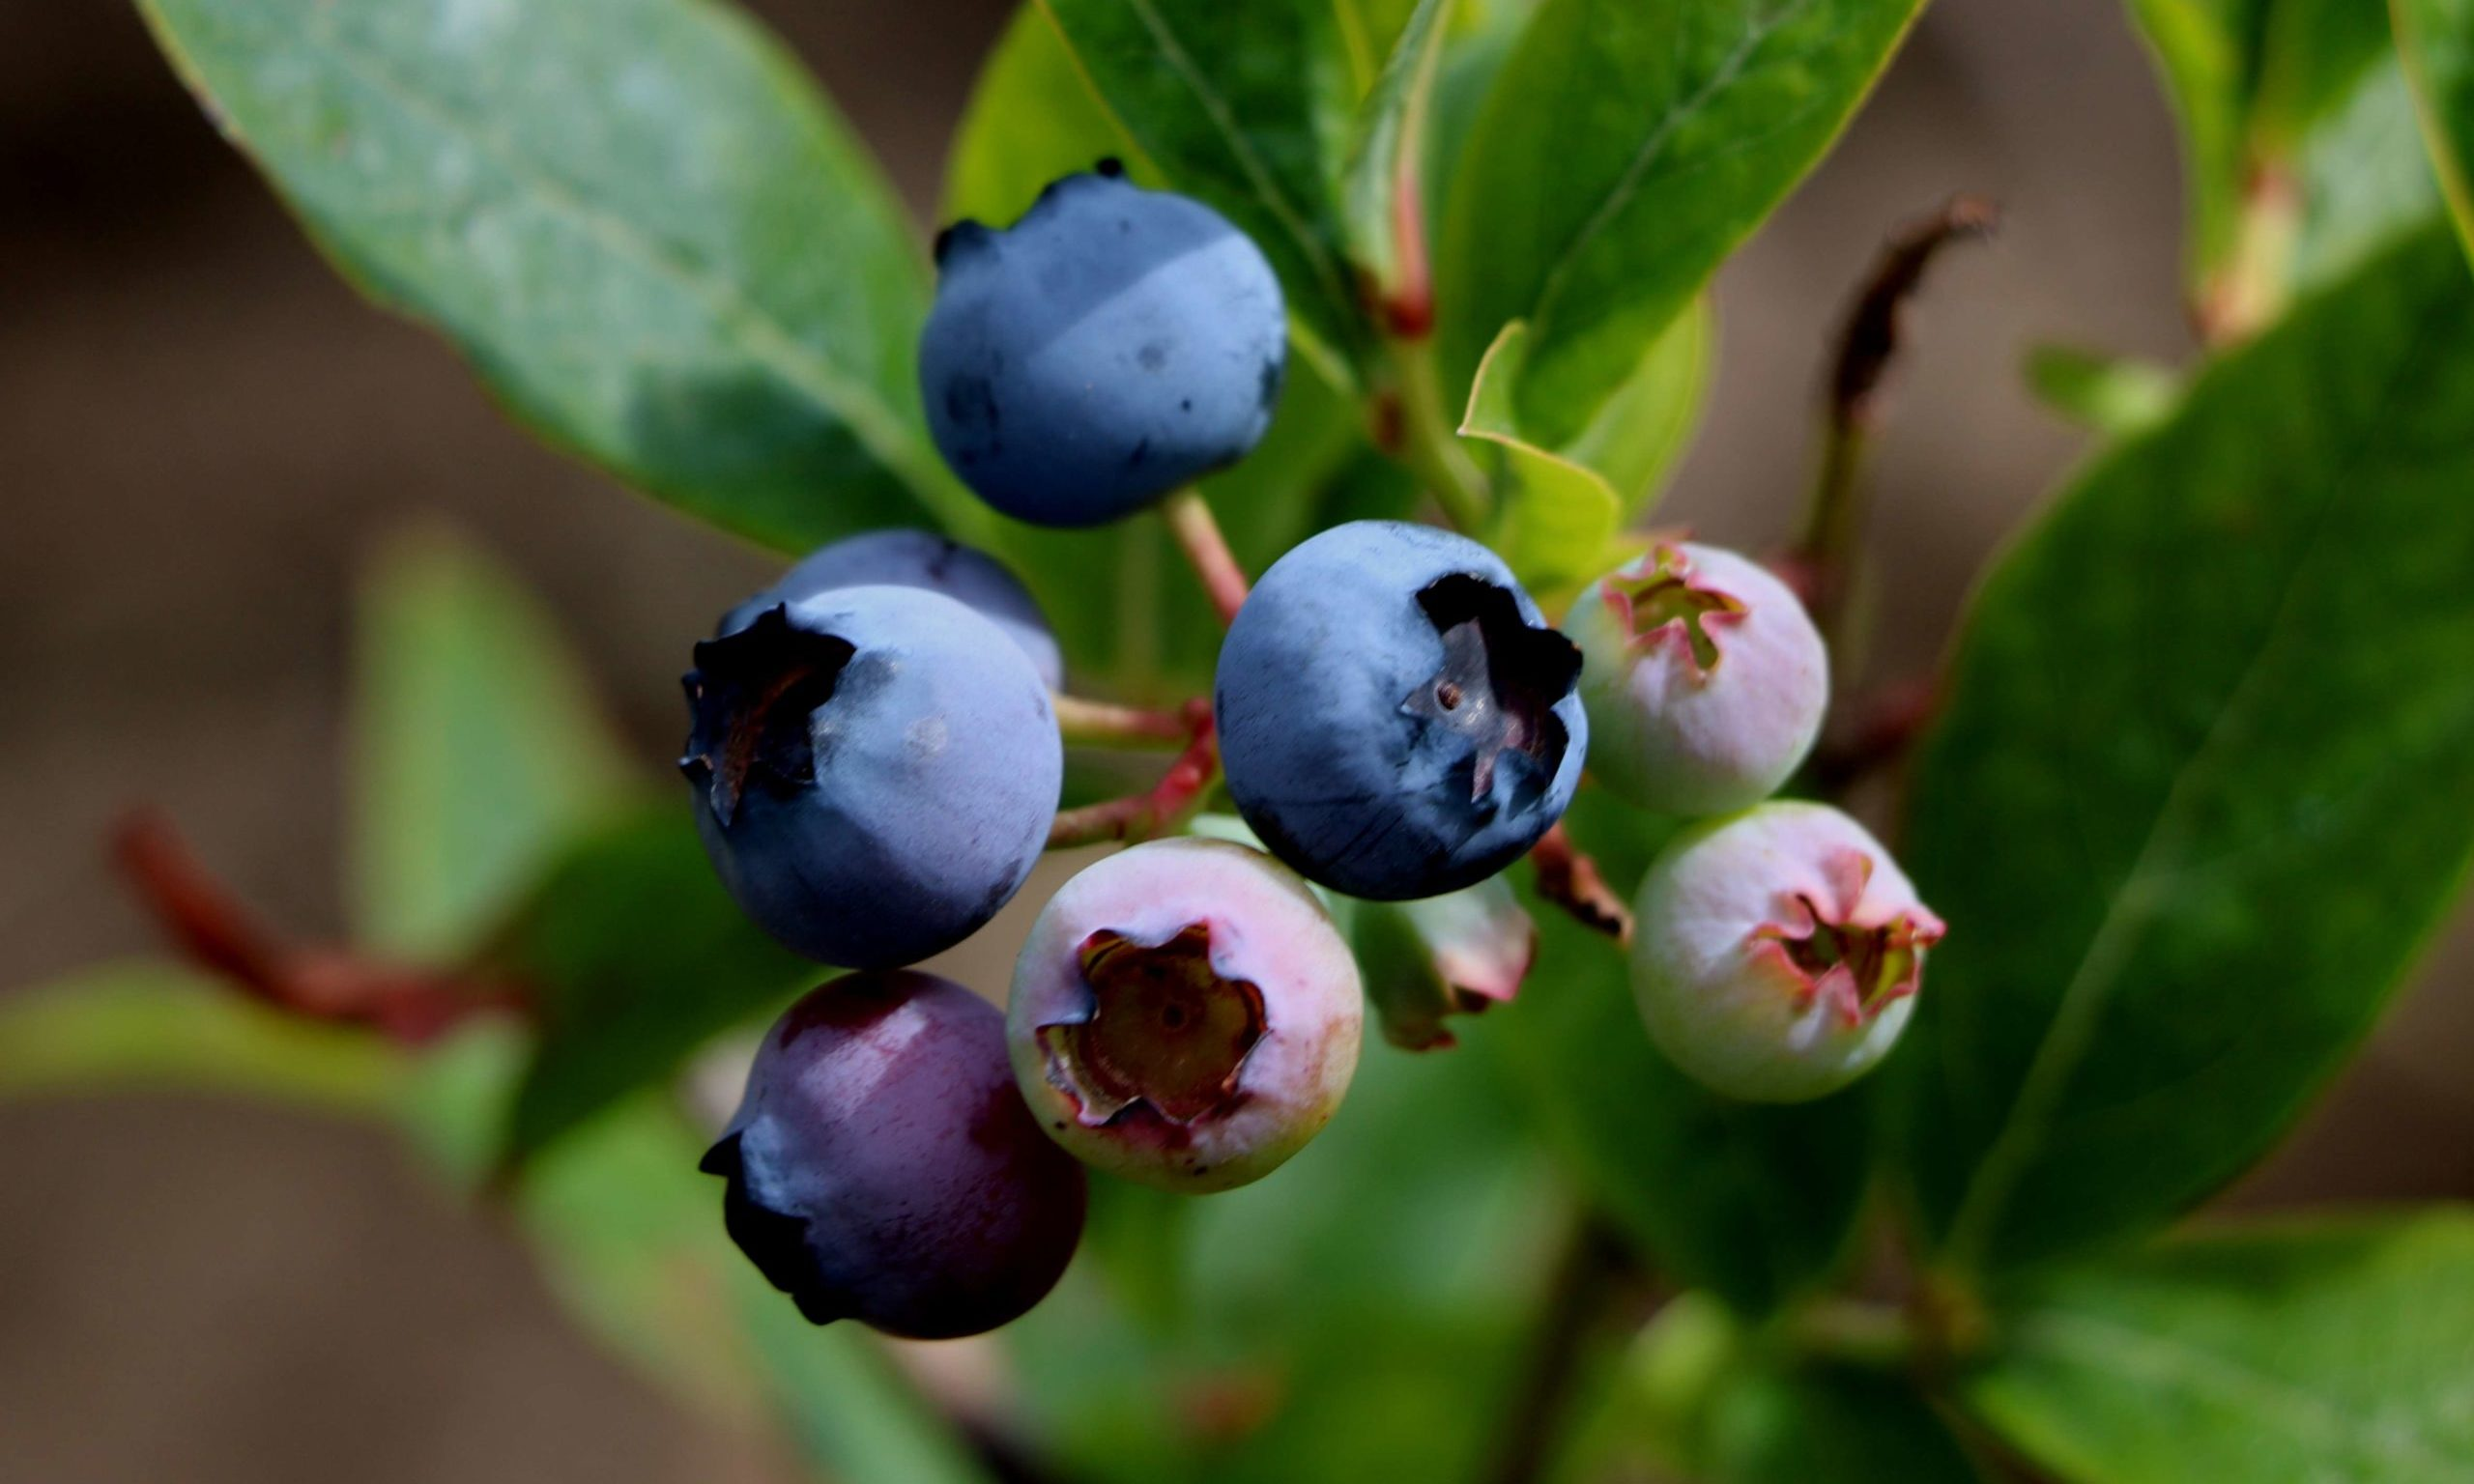 Blueberries July 2018